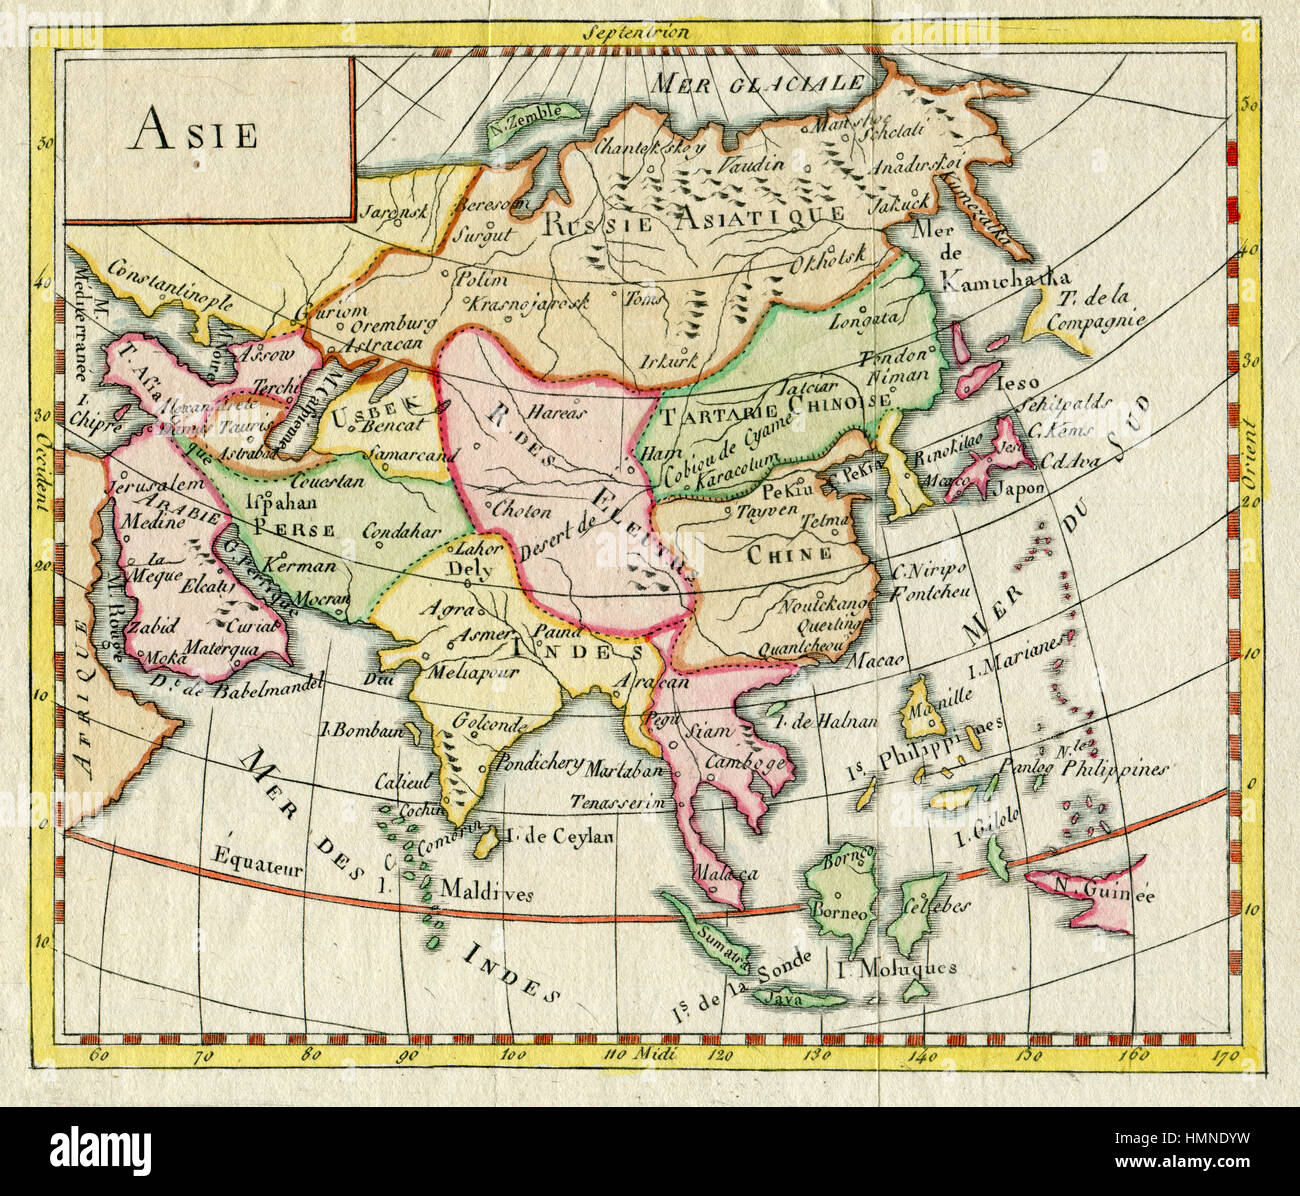 Antique map of asia shows india russia japan 1750 stock photo antique map of asia shows india russia japan 1750 gumiabroncs Choice Image